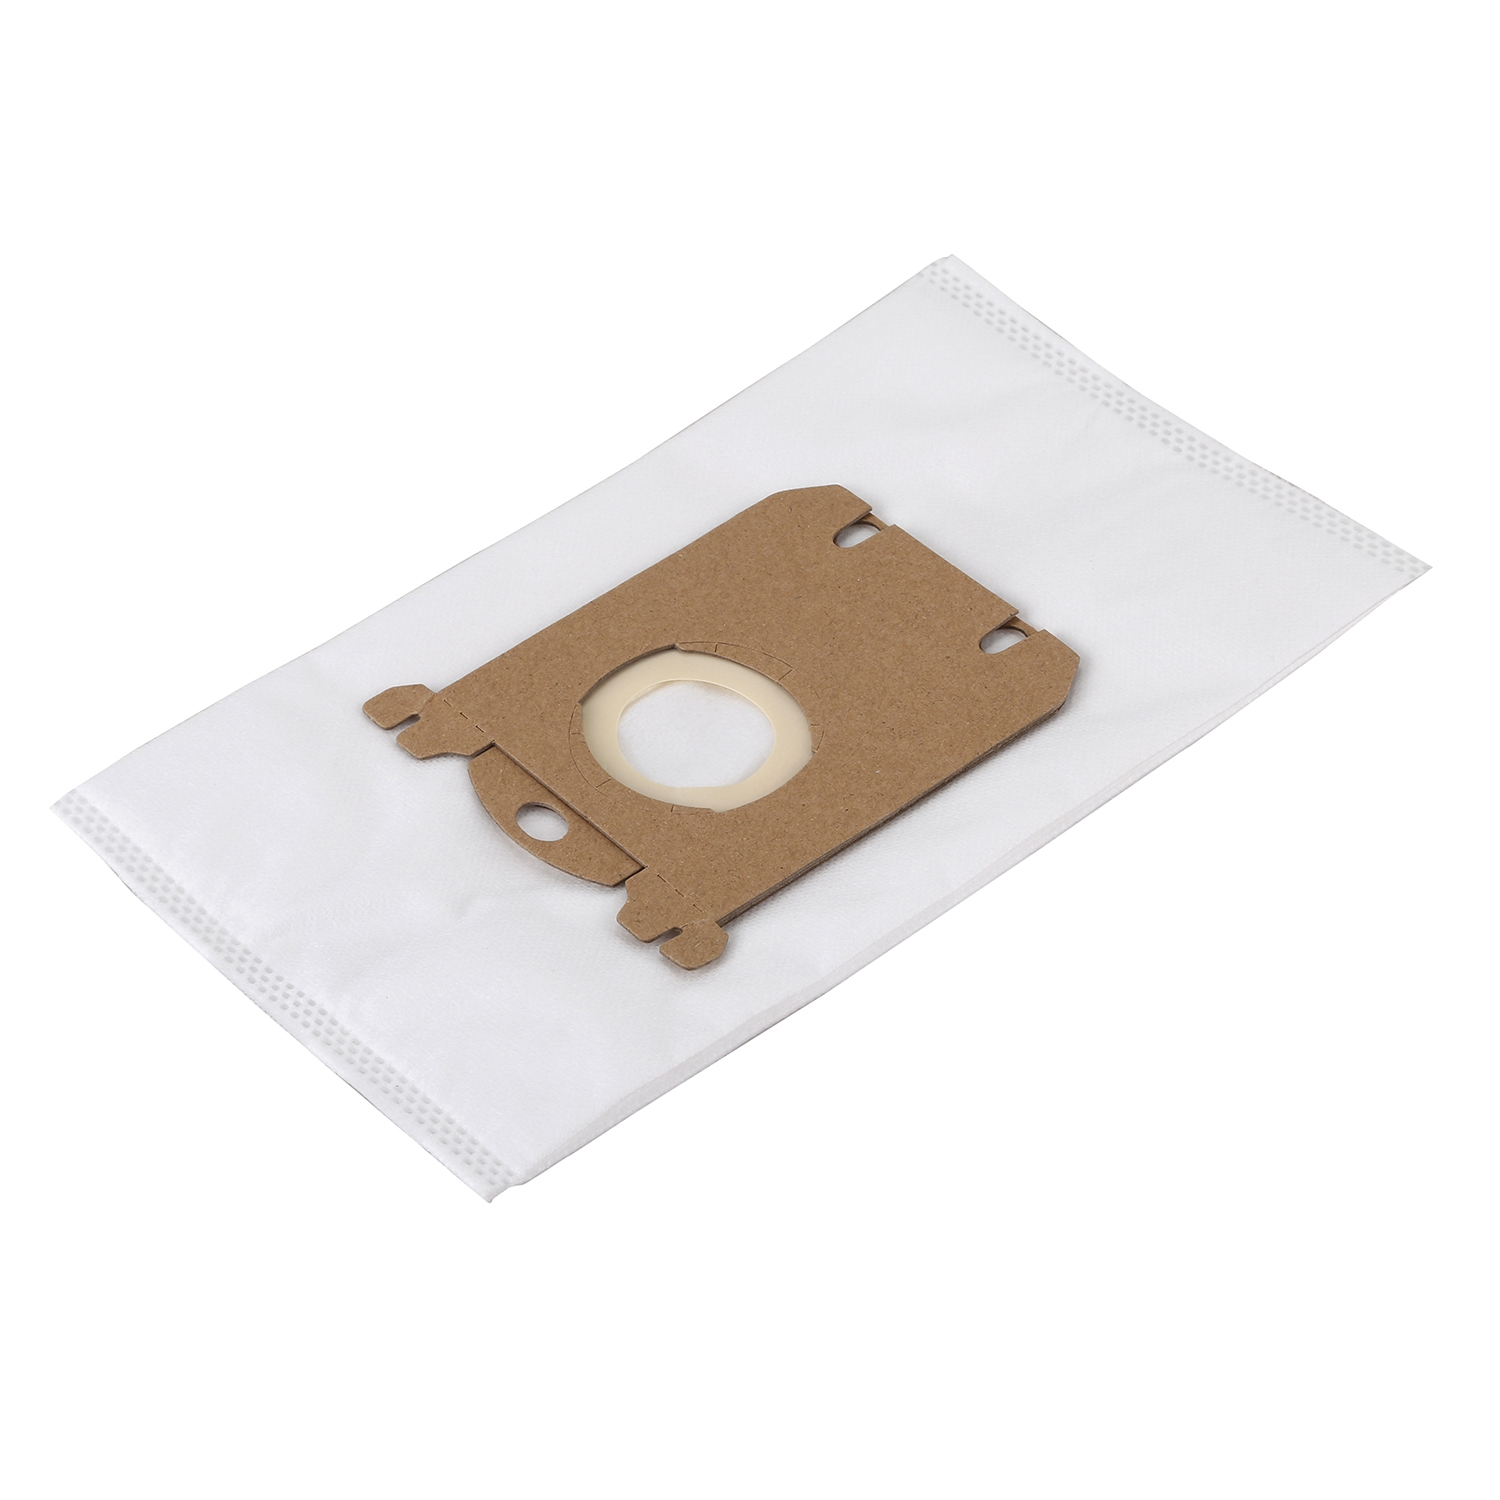 New Hot 10 pieces a lot Vacuum Cleaner Bags Dust Bag fit for Electrolux Vacuum Cleaner filter and S BAG in Vacuum Cleaner Parts from Home Appliances